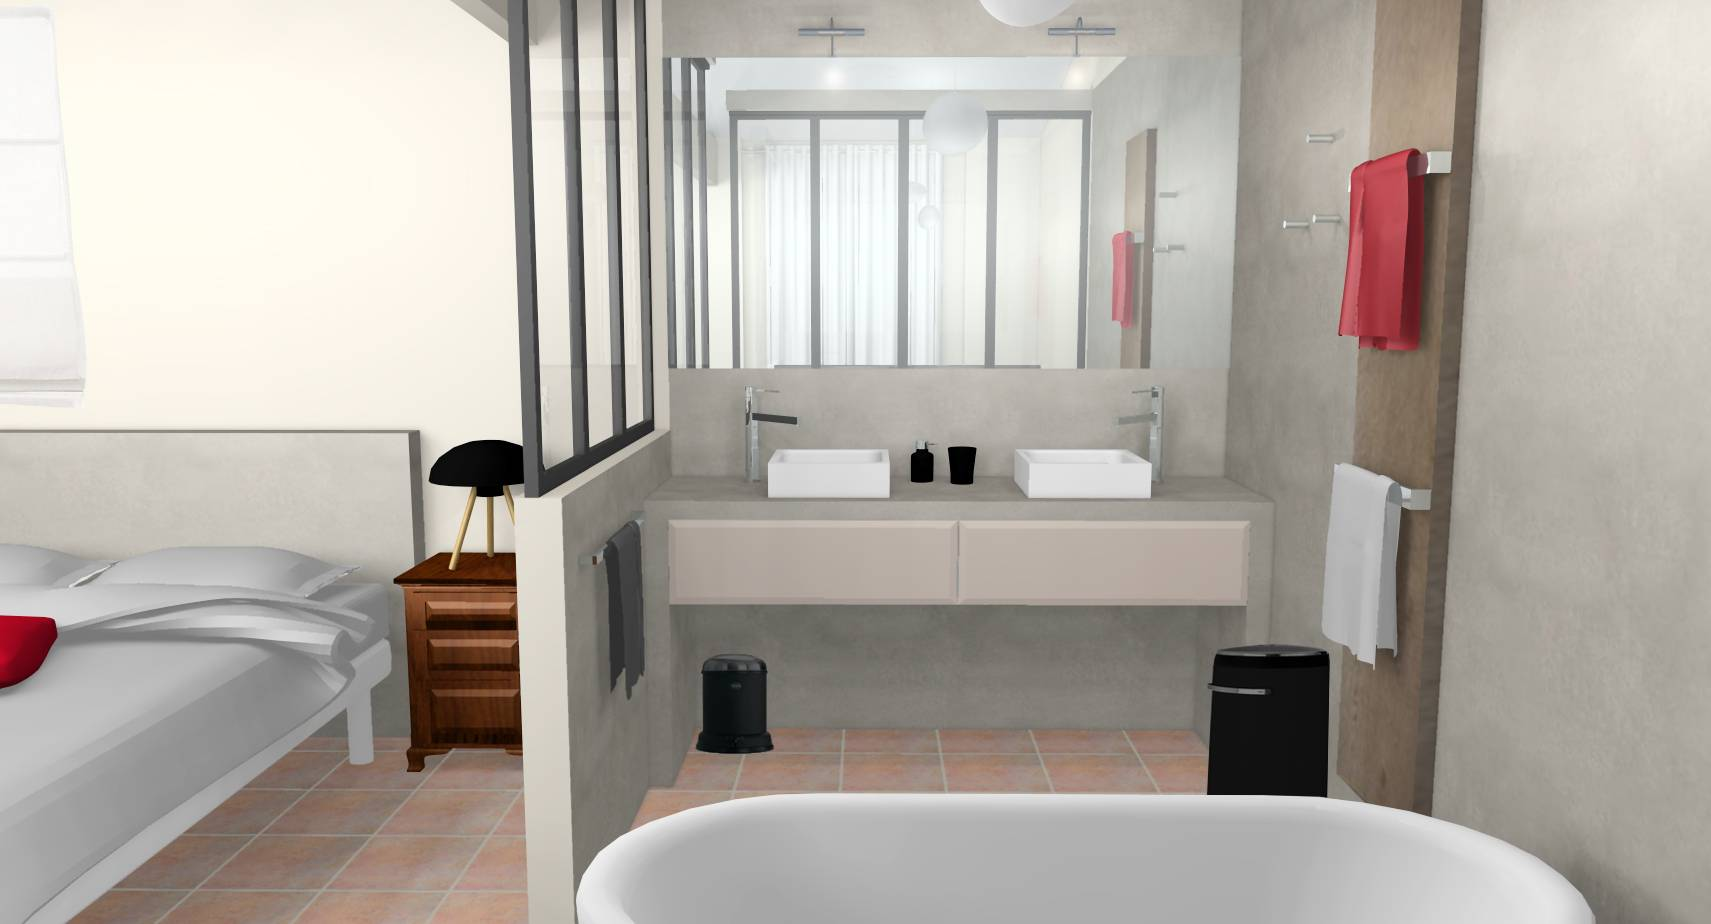 salle bain campagne revisitee moderne accueil design et. Black Bedroom Furniture Sets. Home Design Ideas